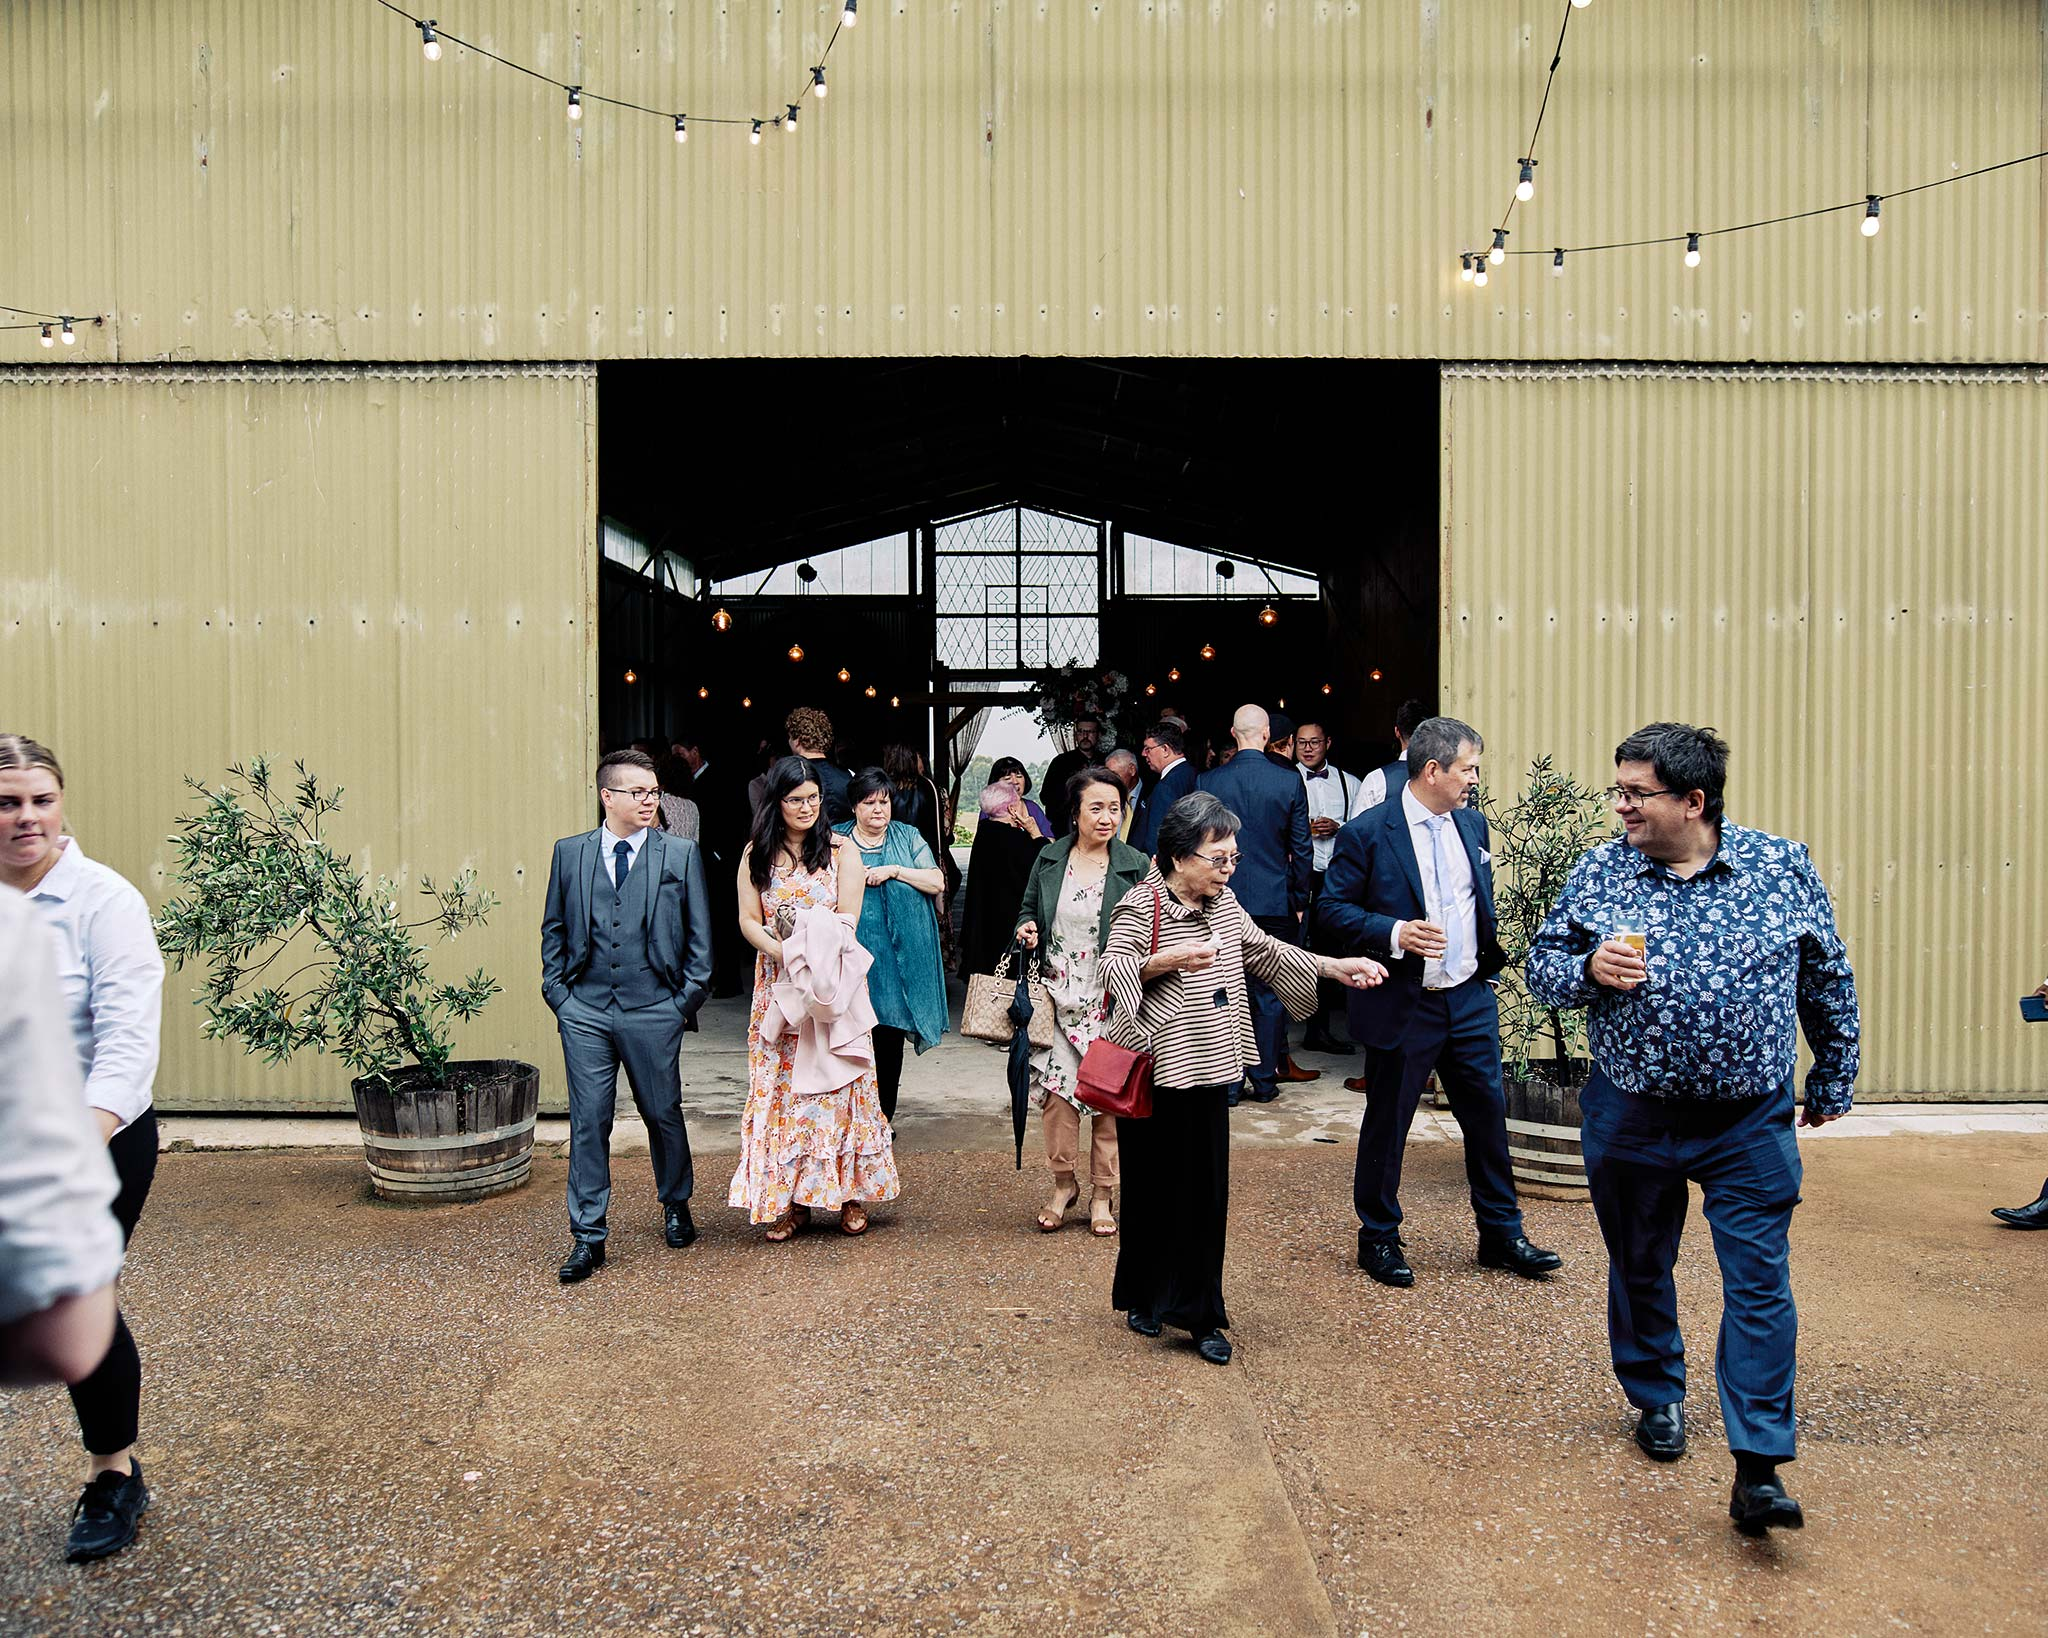 Zonzo estate wedding guests enter for reception